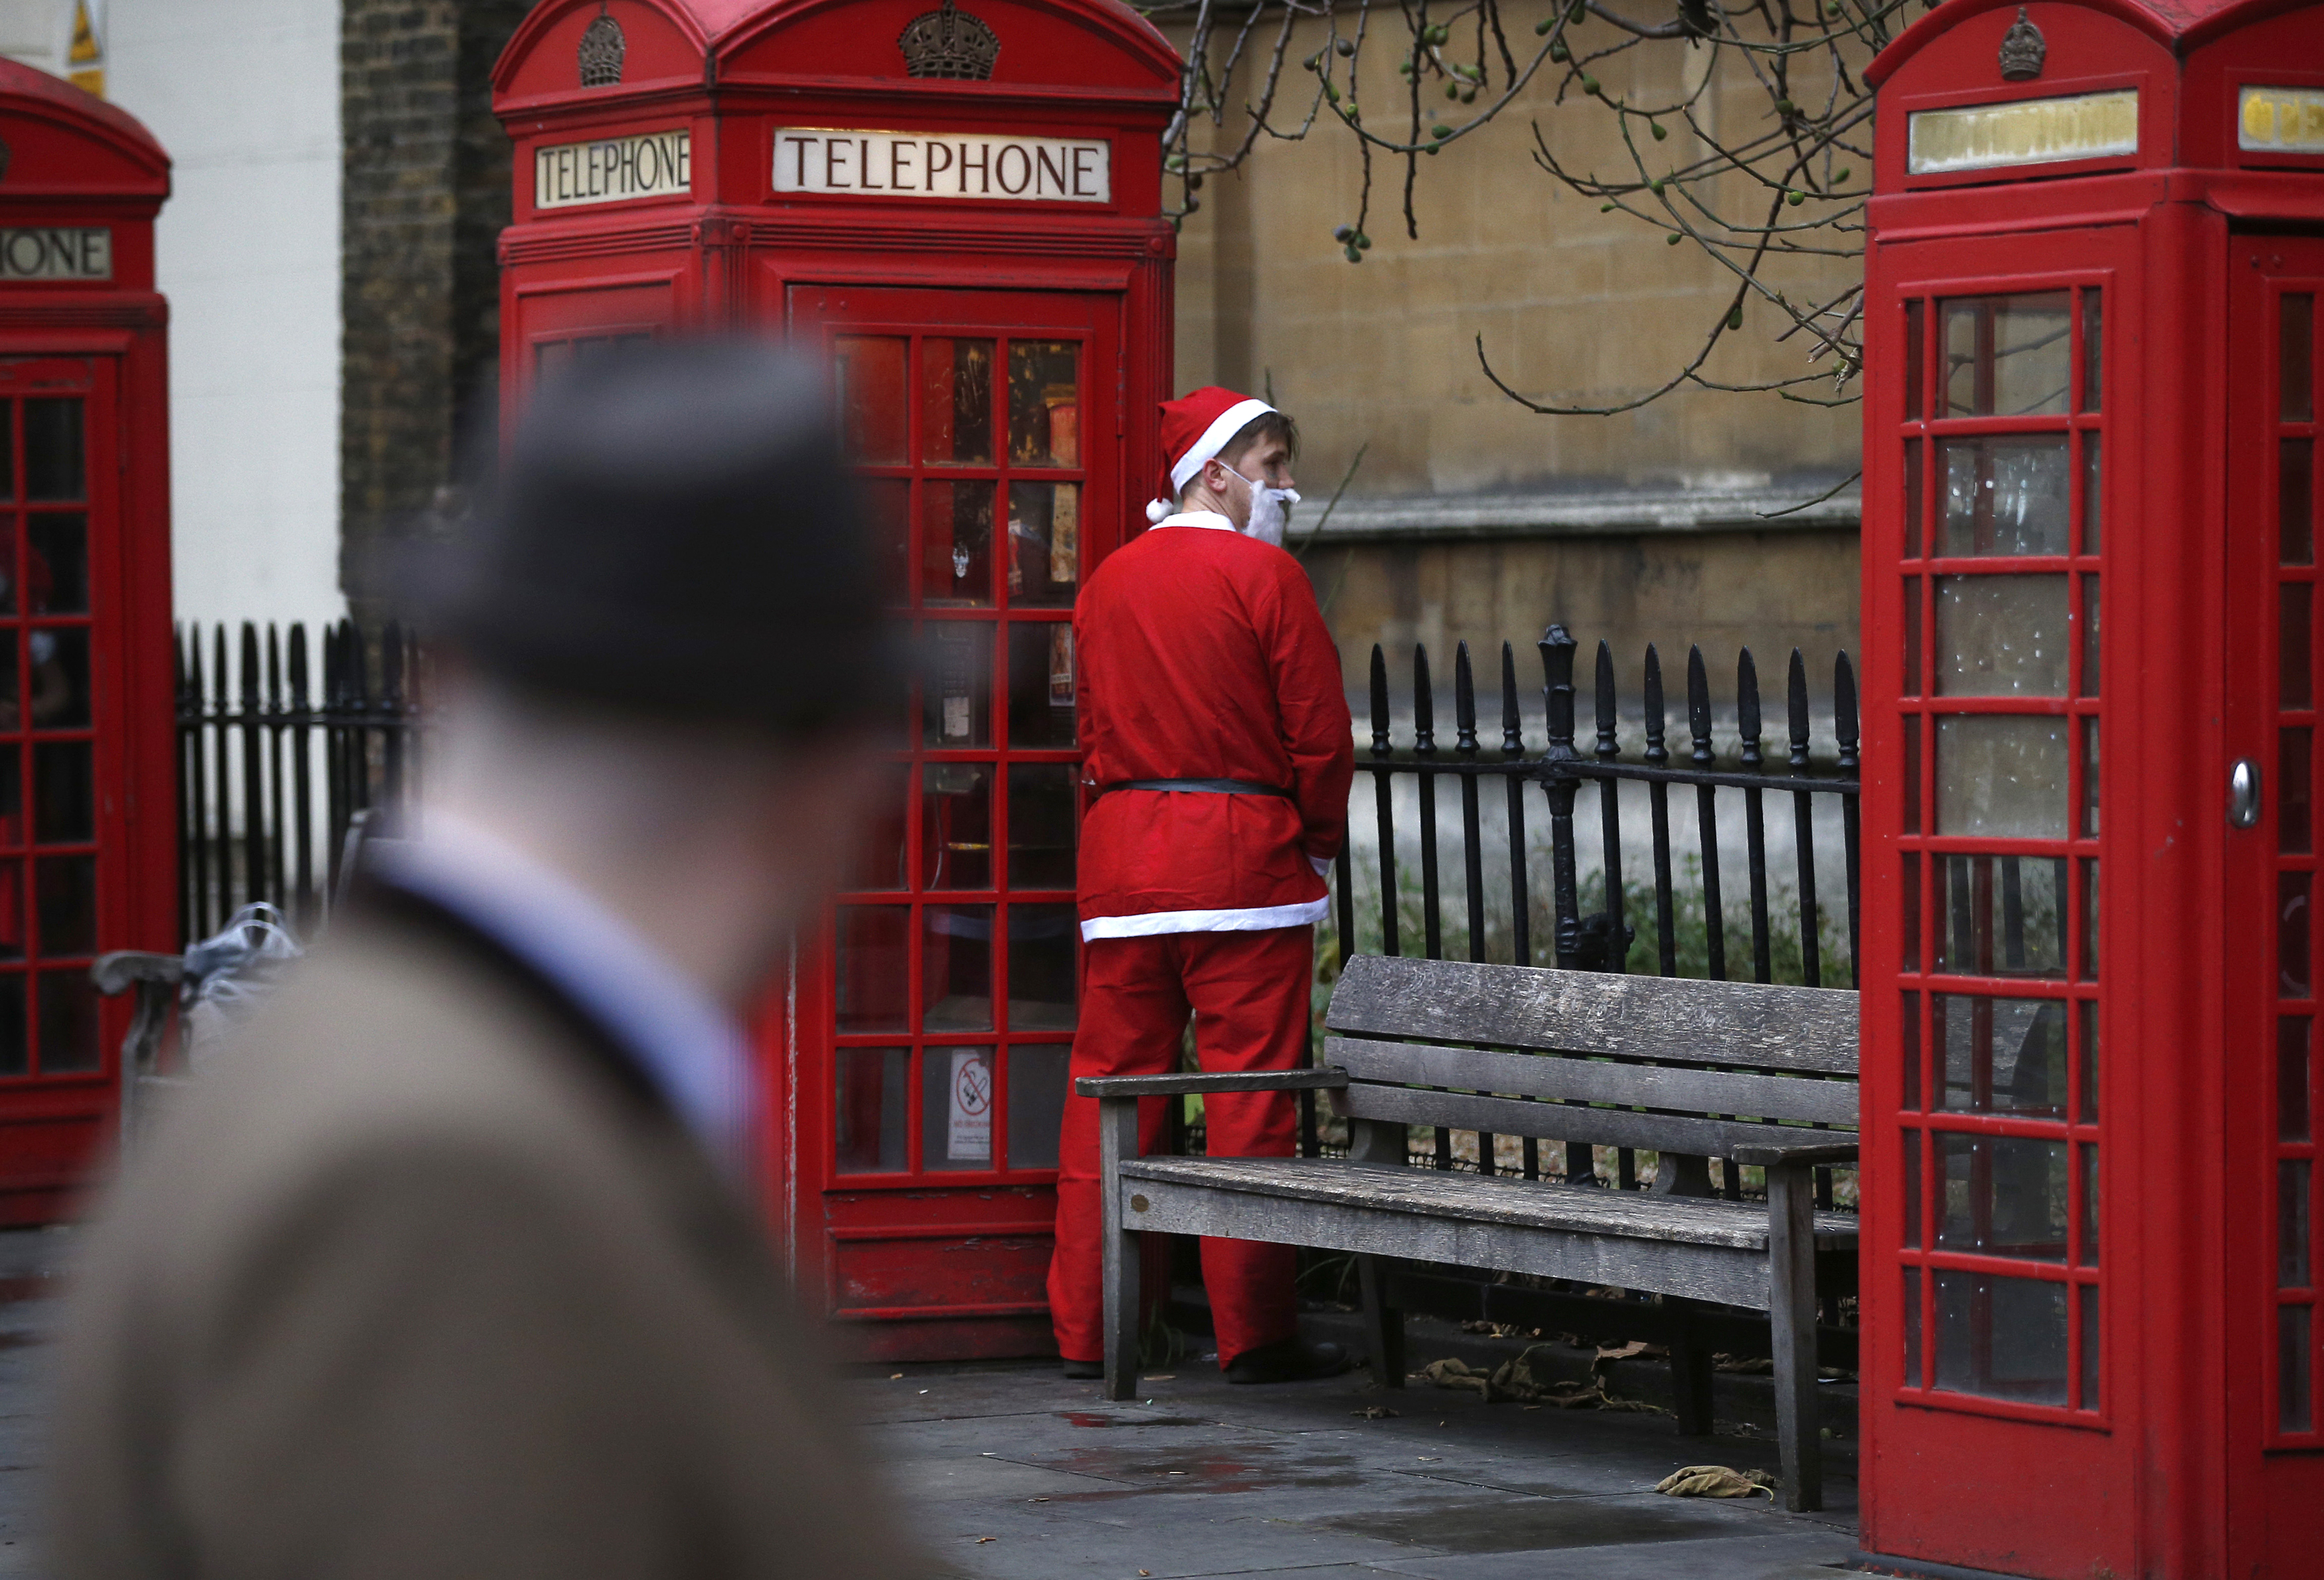 A man dressed as Santa Claus relieves himself during the Santacon event in London